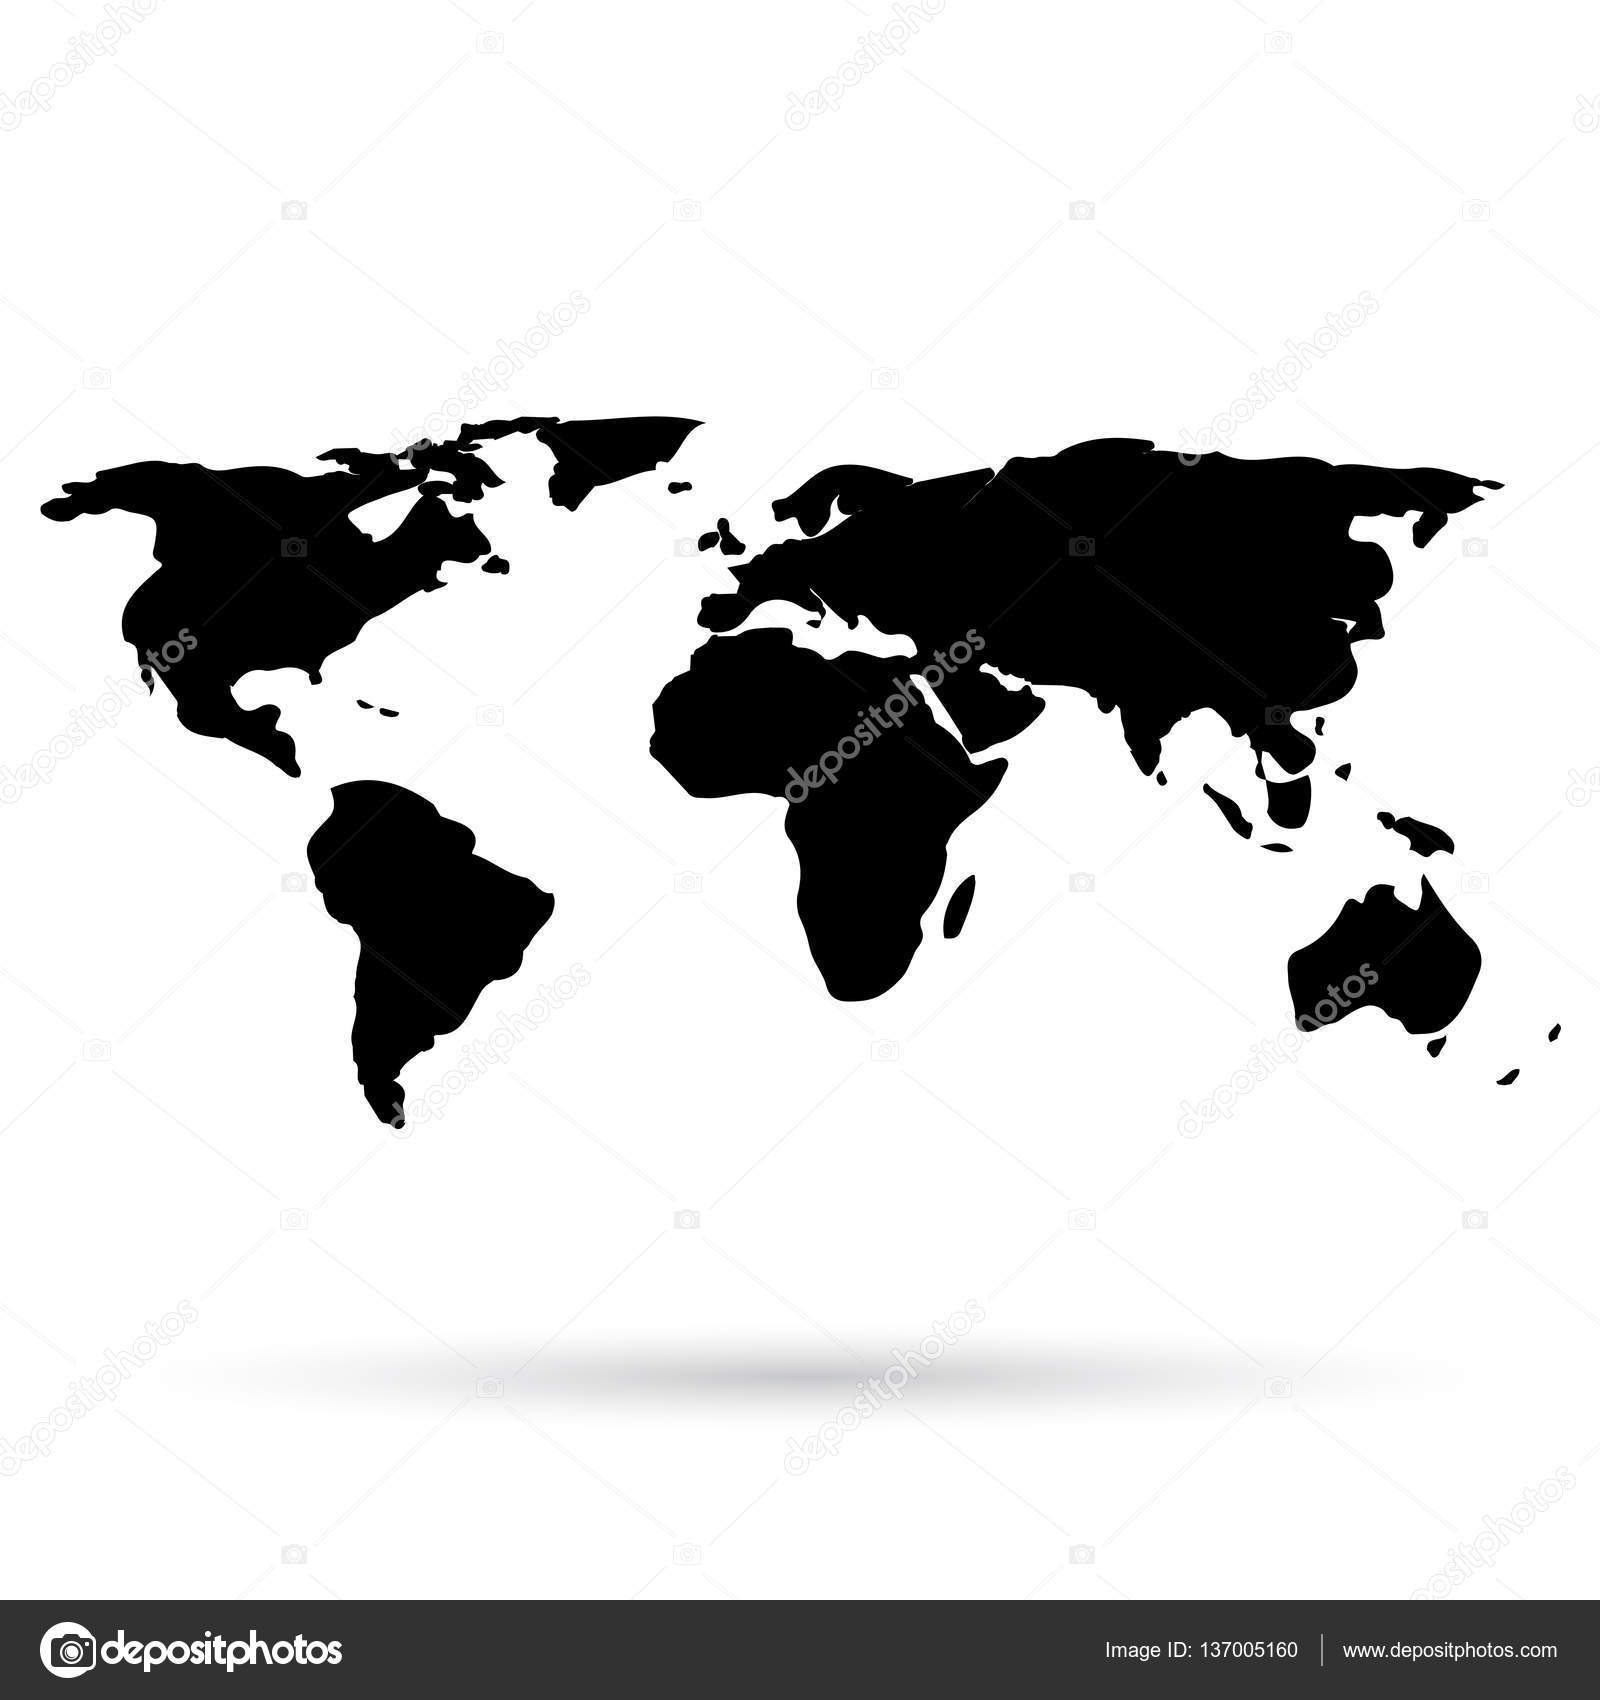 World map black icon on white background stock vector world map black icon on white background stock vector gumiabroncs Images